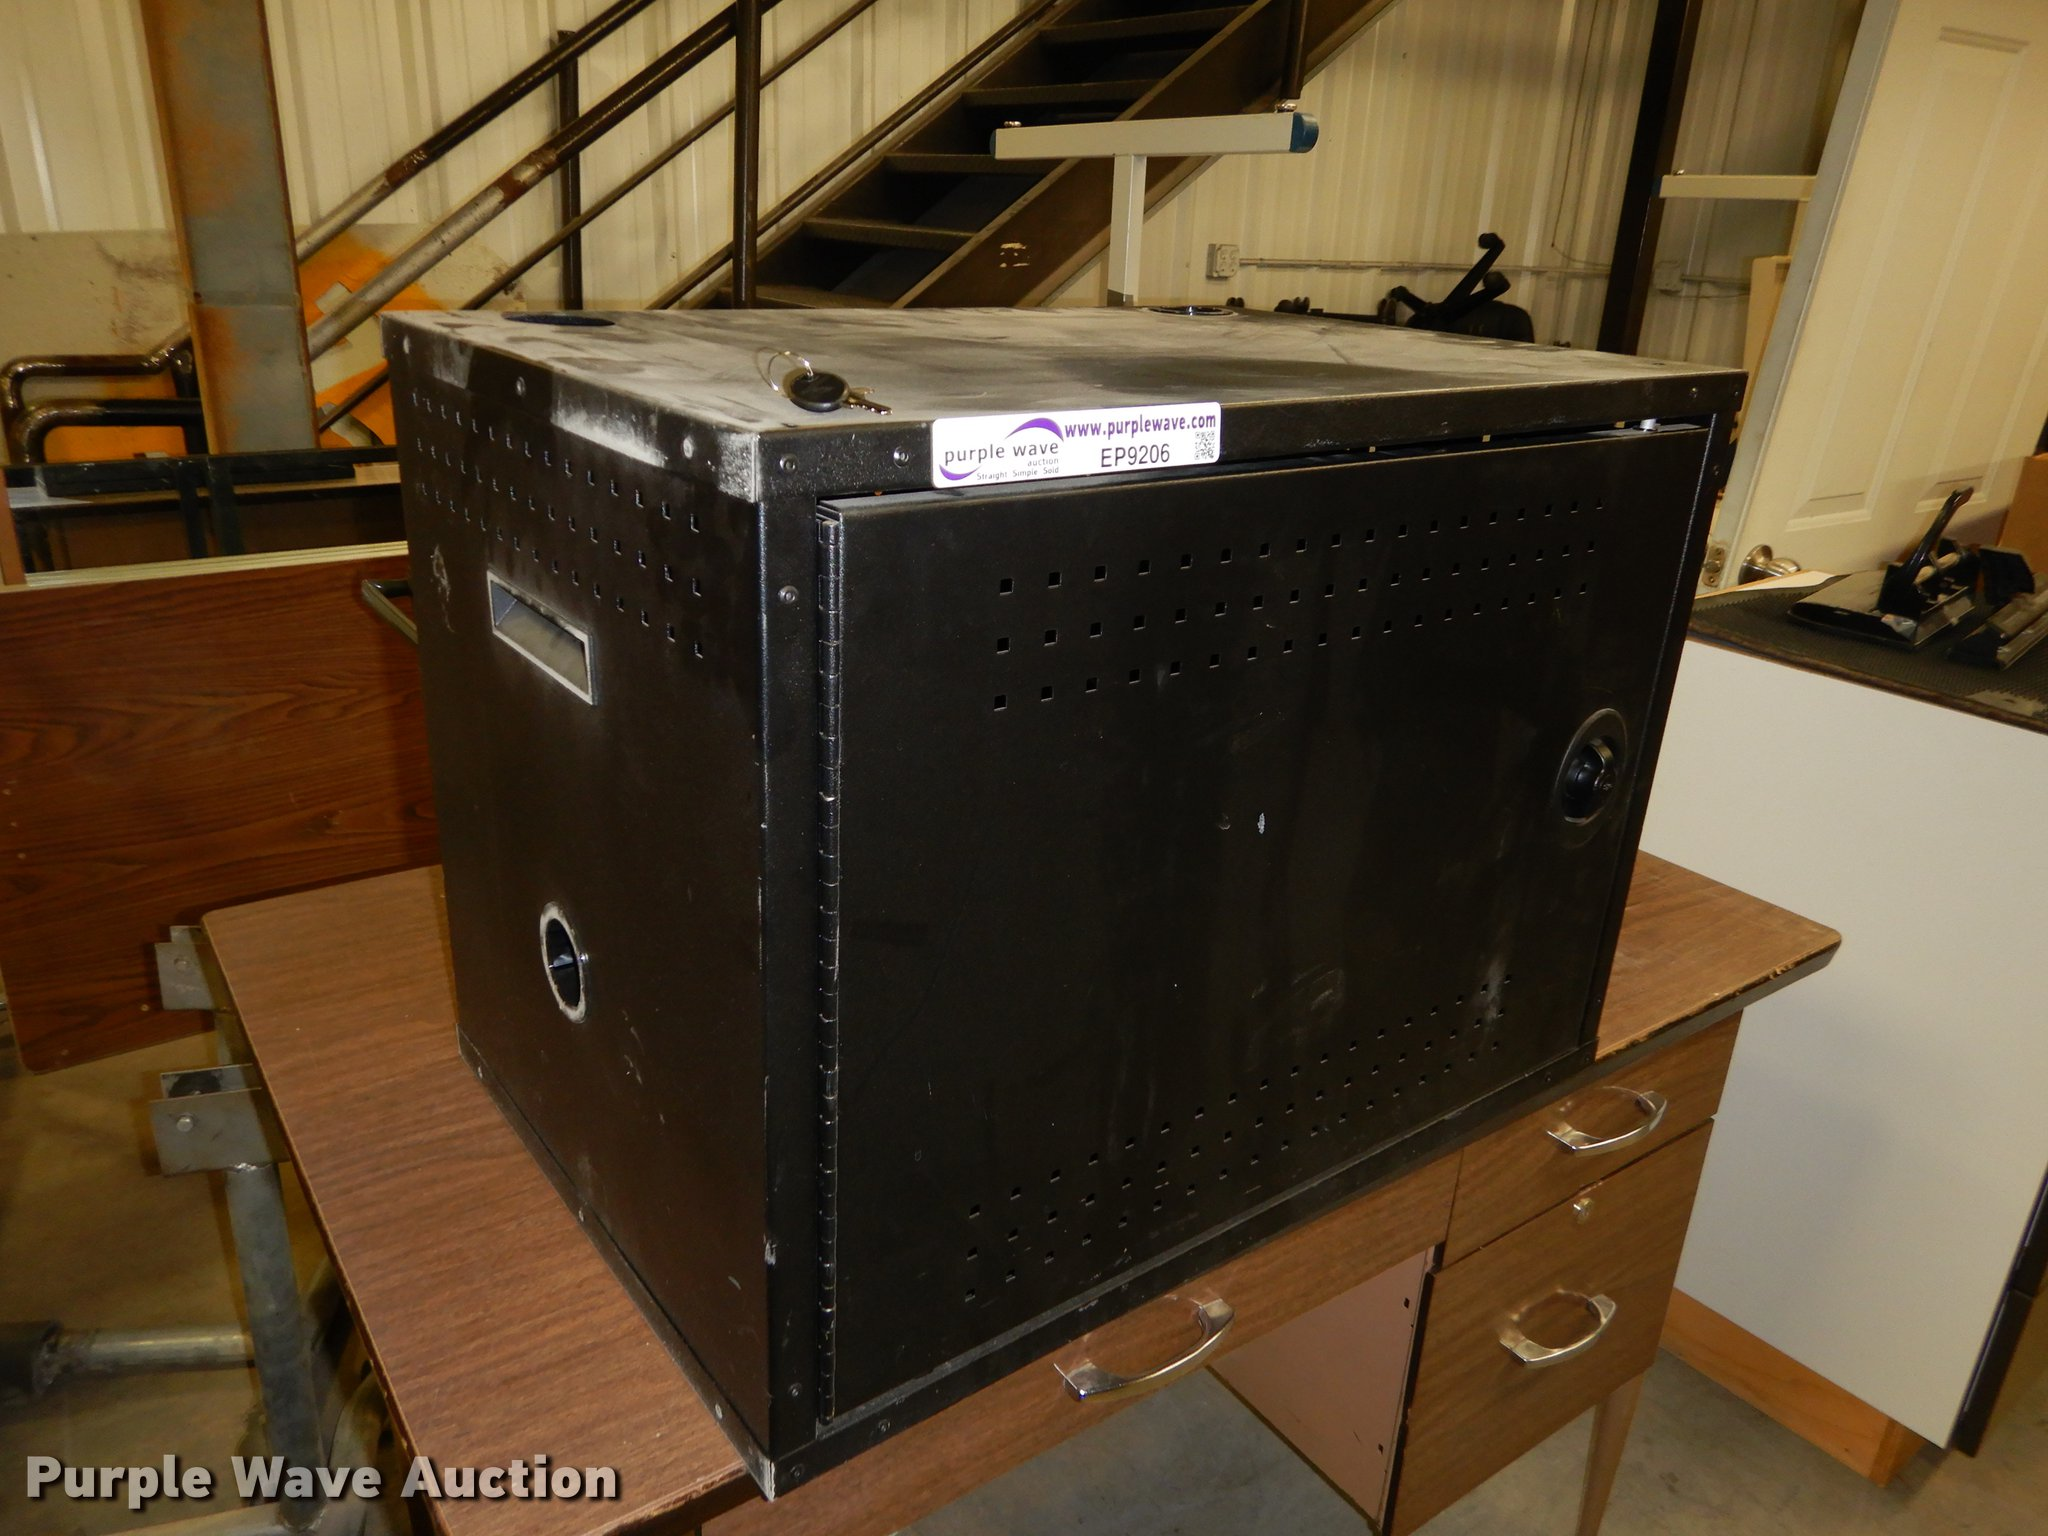 EP9206 Image For Item EP9206 (25) Wall Mounted Laptop Storage Cabinet